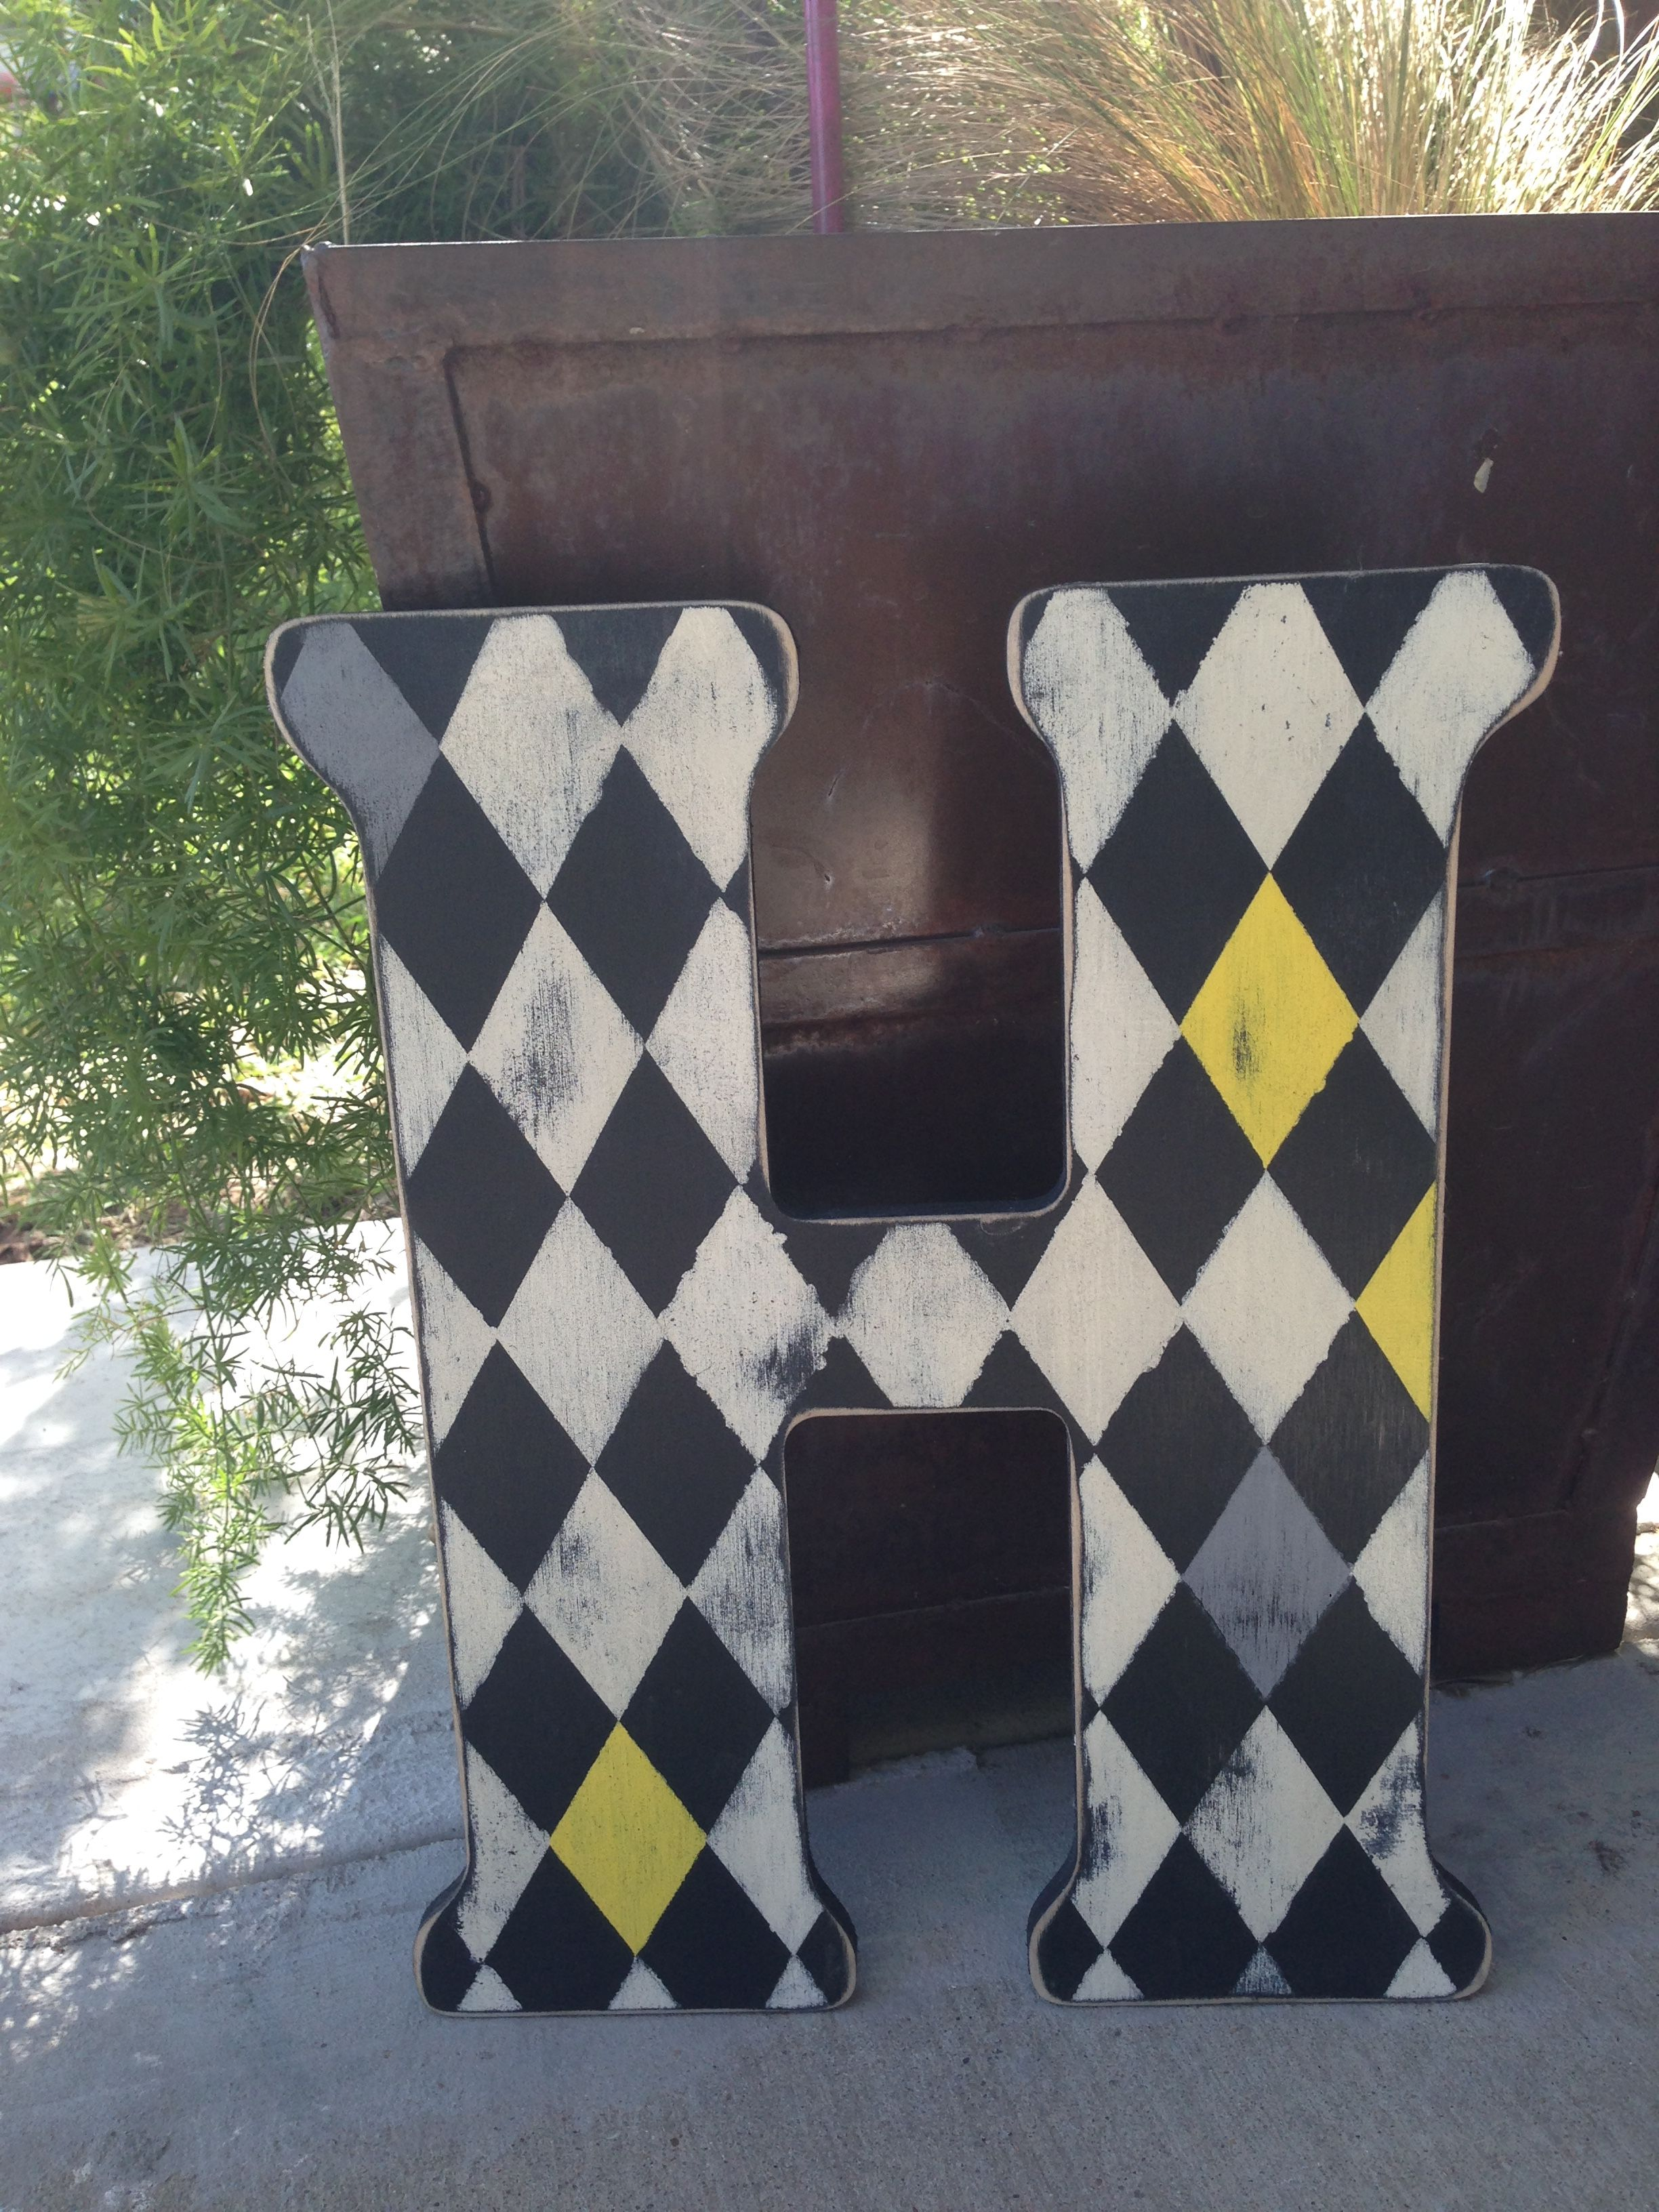 Wooden letter painted with harlequin/diamond design. I